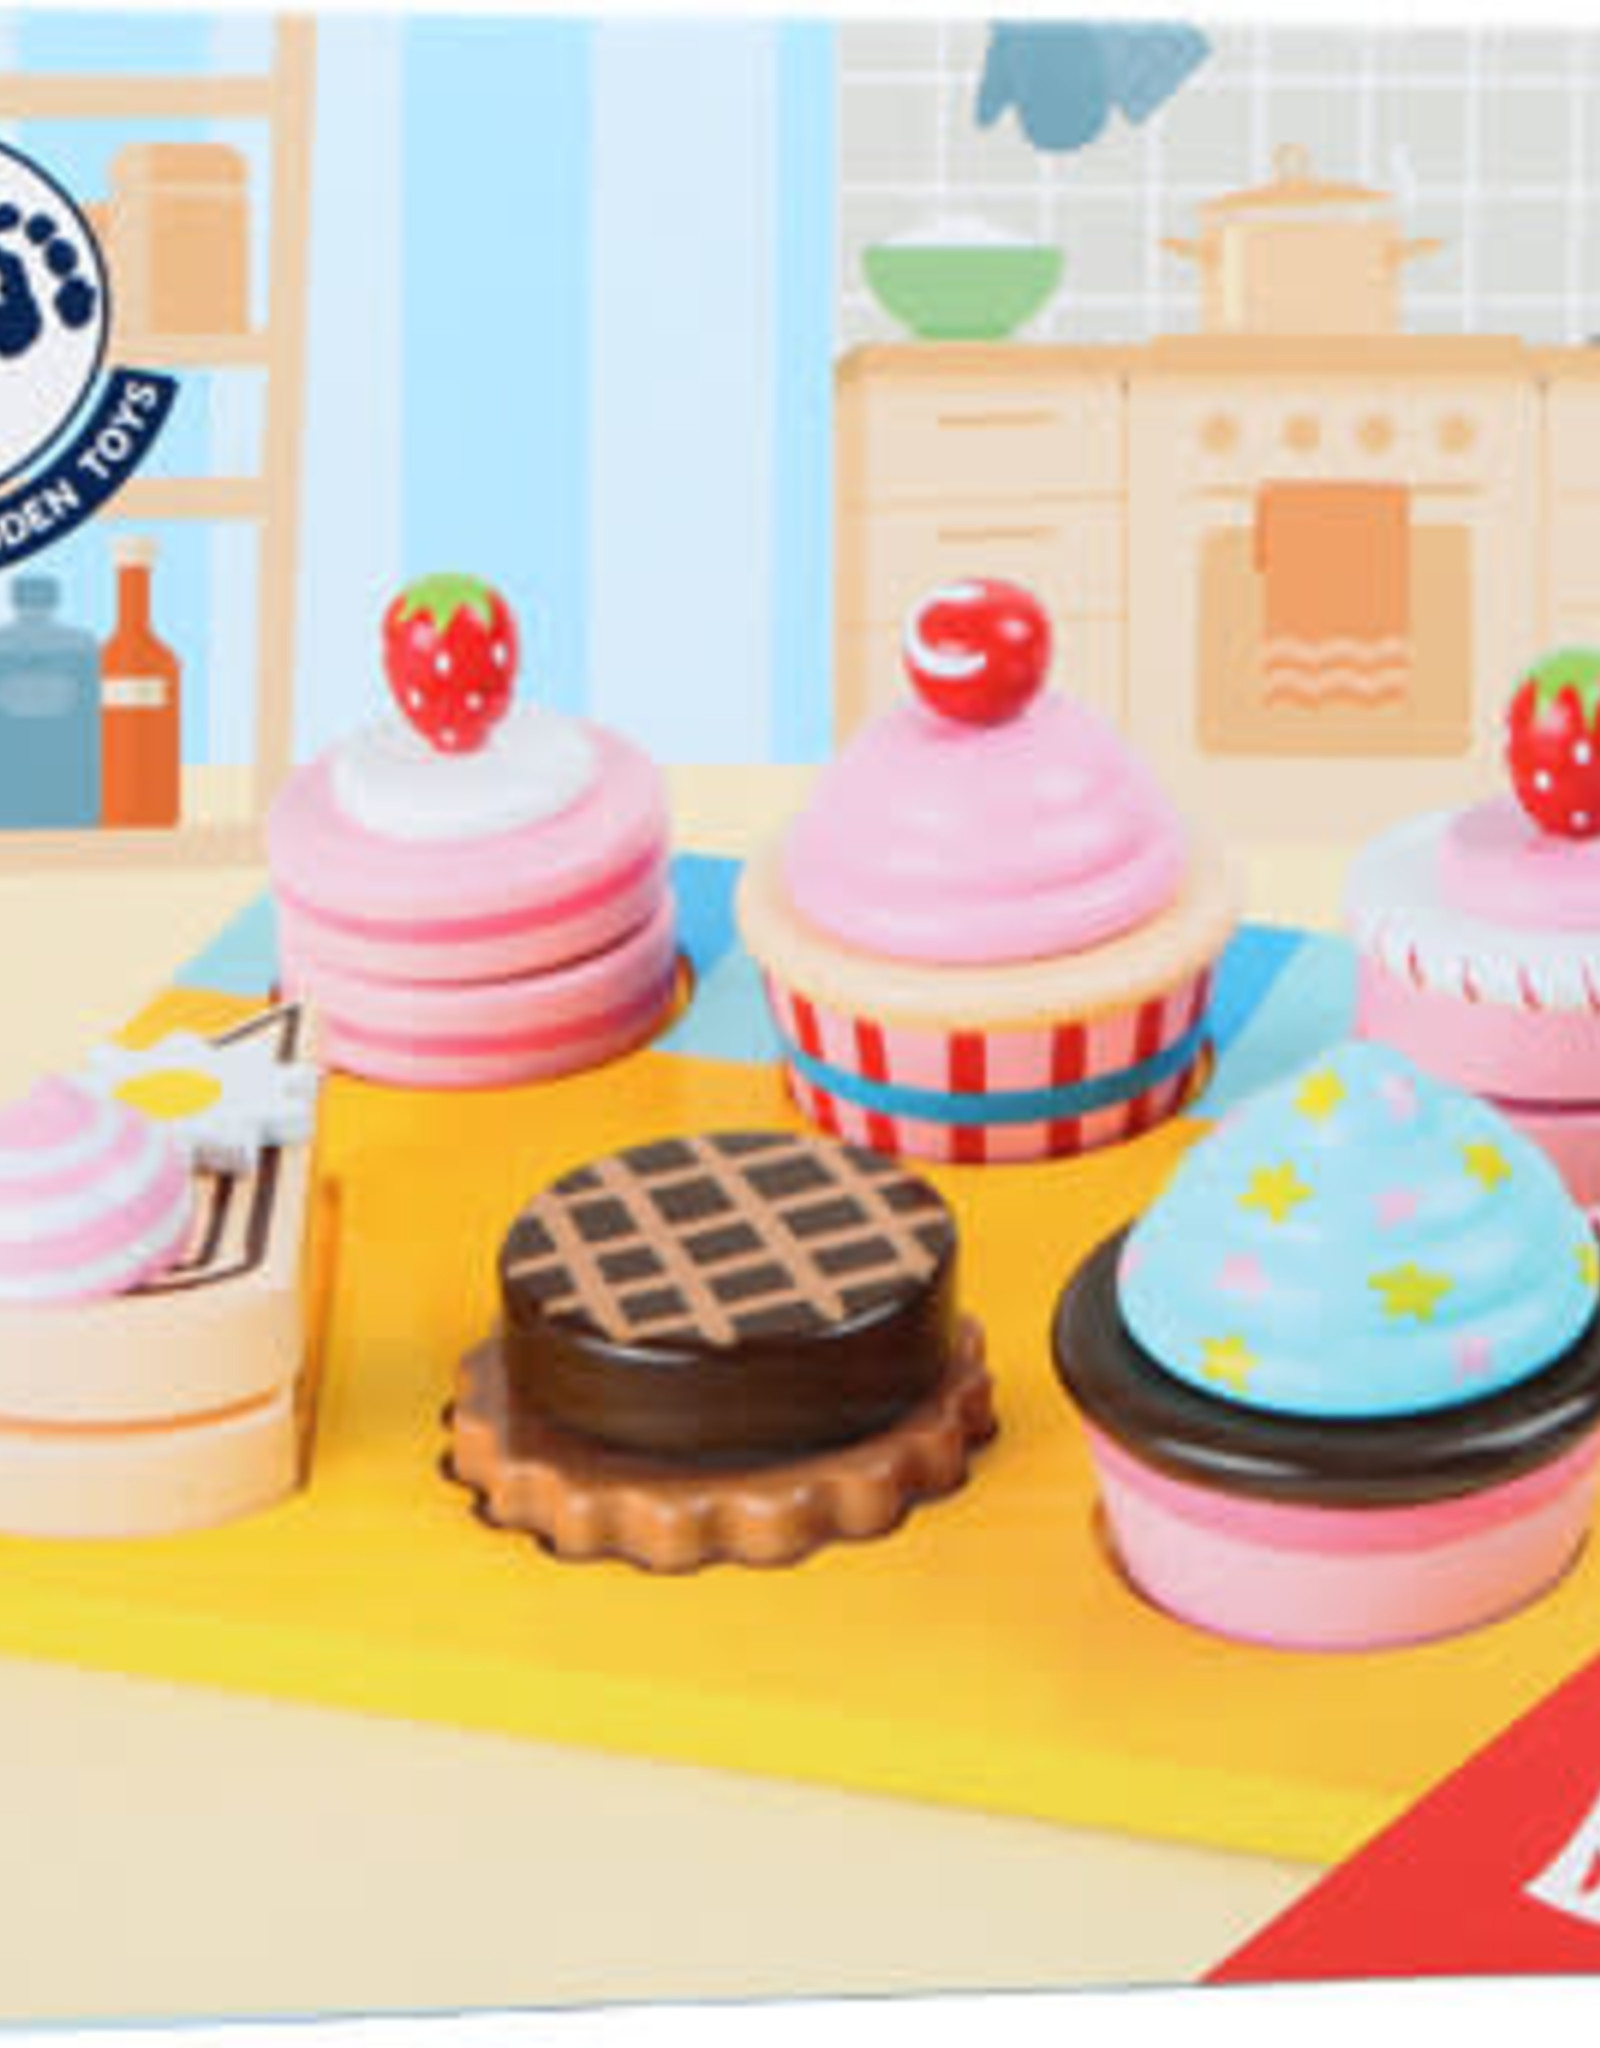 Small Foot Cupcakes and Cakes Cutting Set